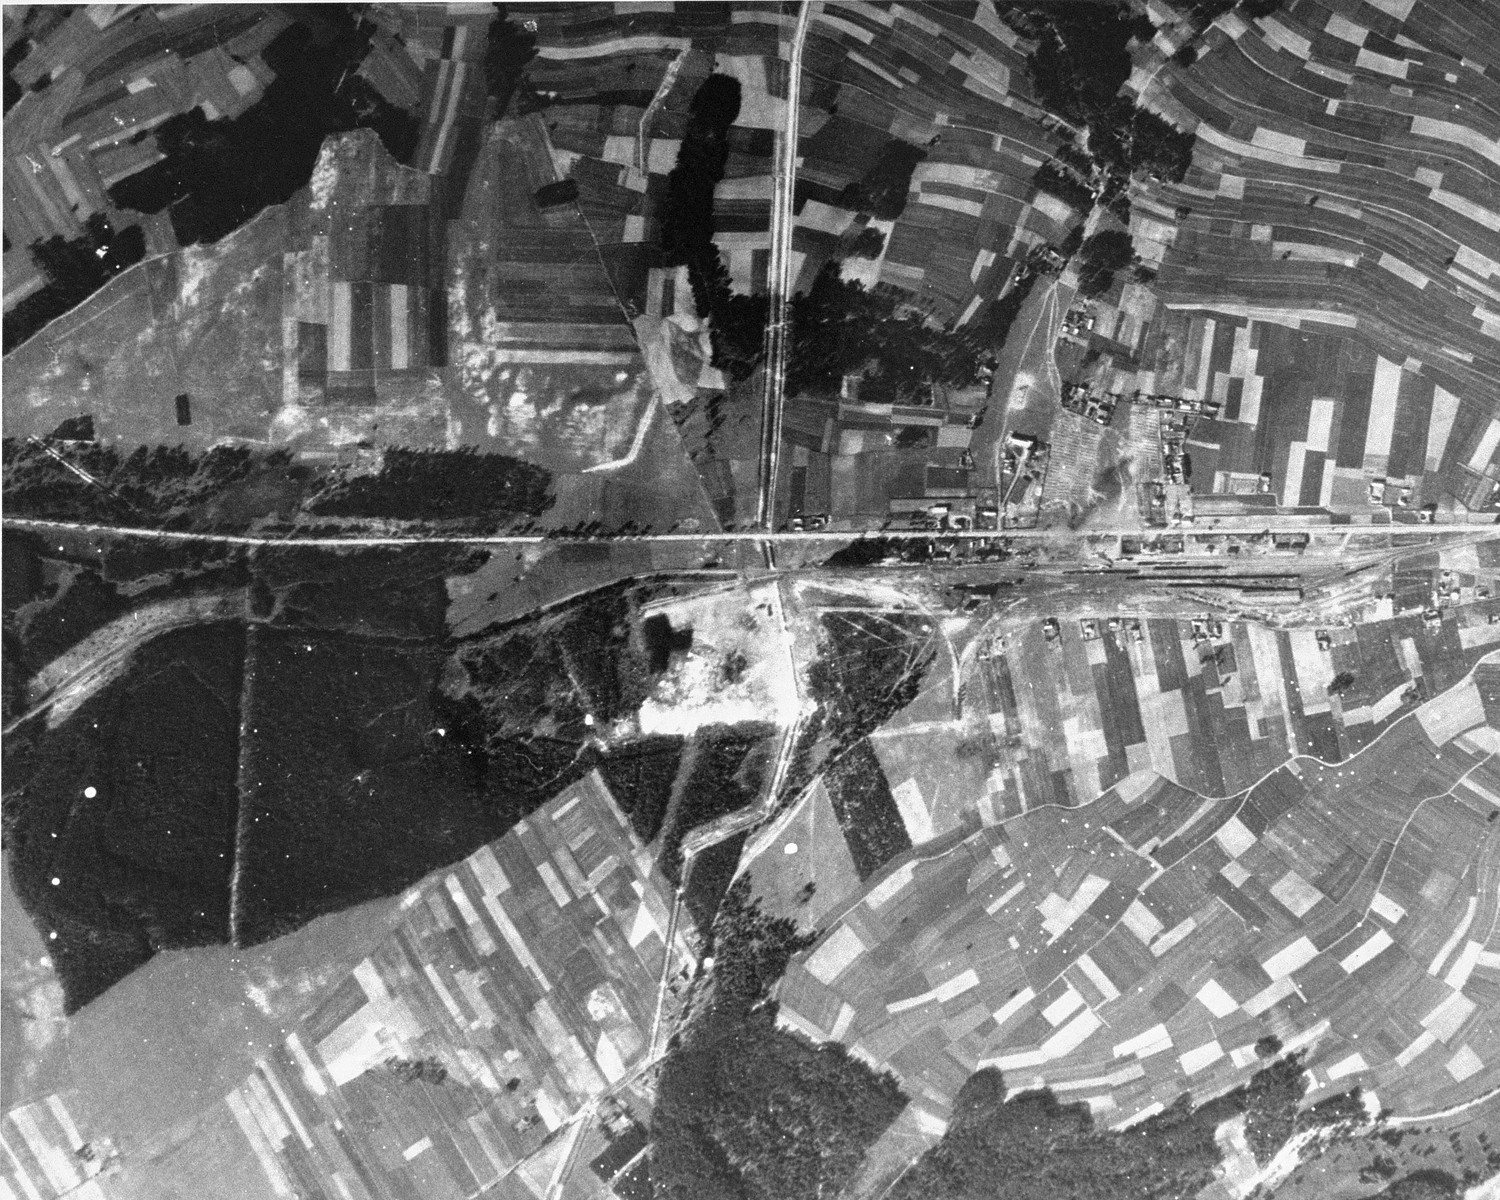 An aerial view of the Belzec area taken by the Luftwaffe during the war, which shows the camp and the rail lines leading to it.